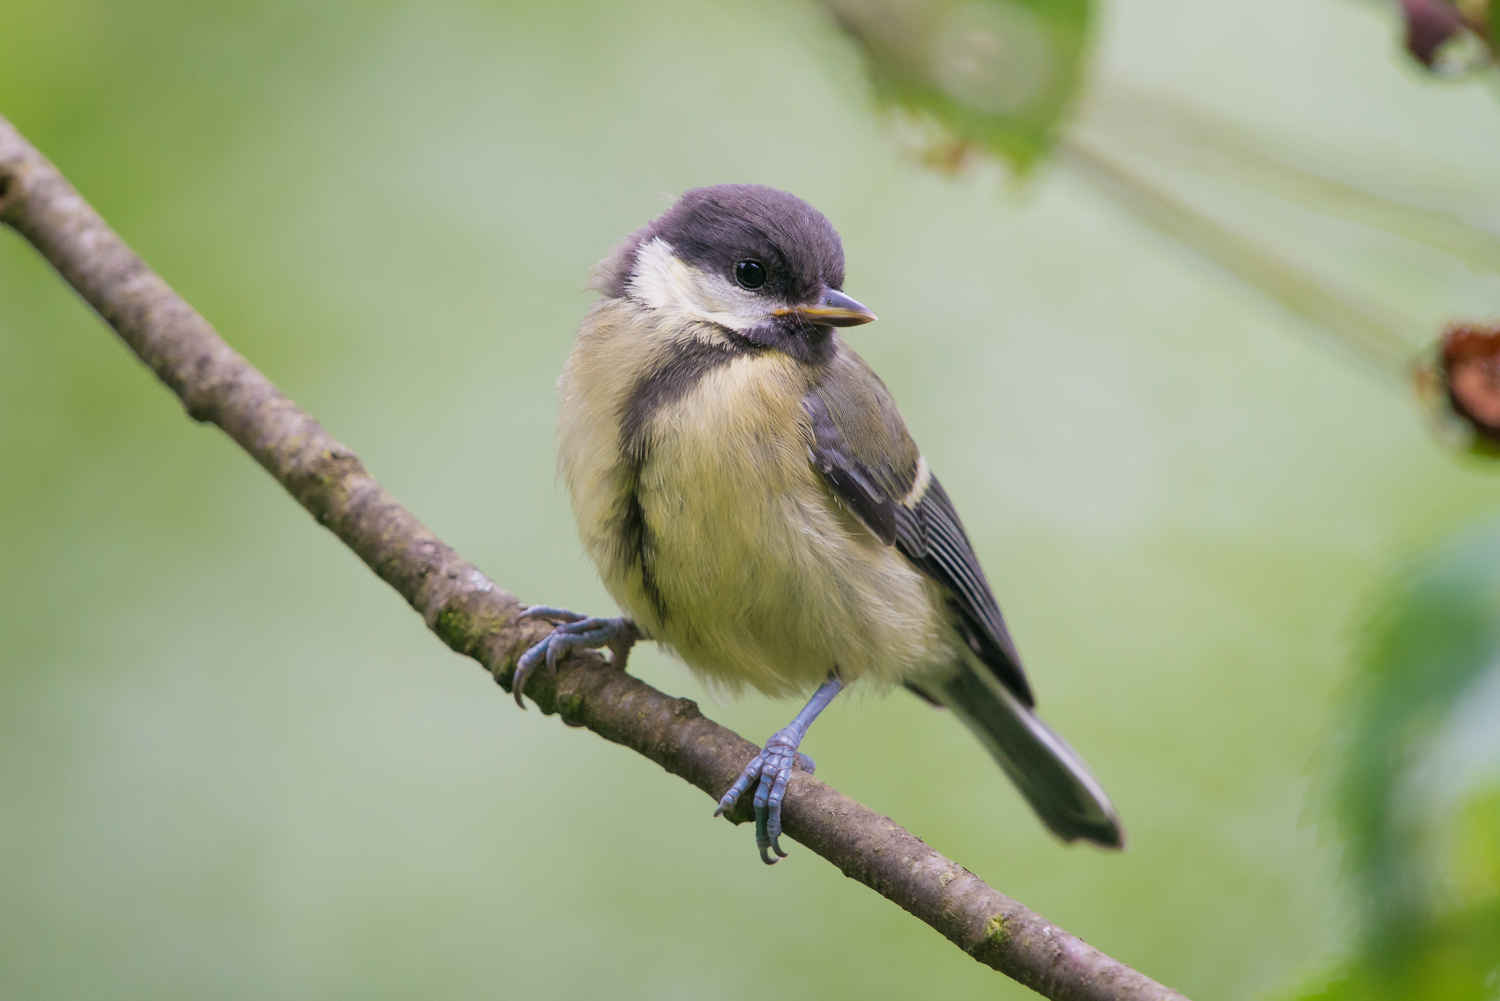 Great Tit, UK birds, wildlife